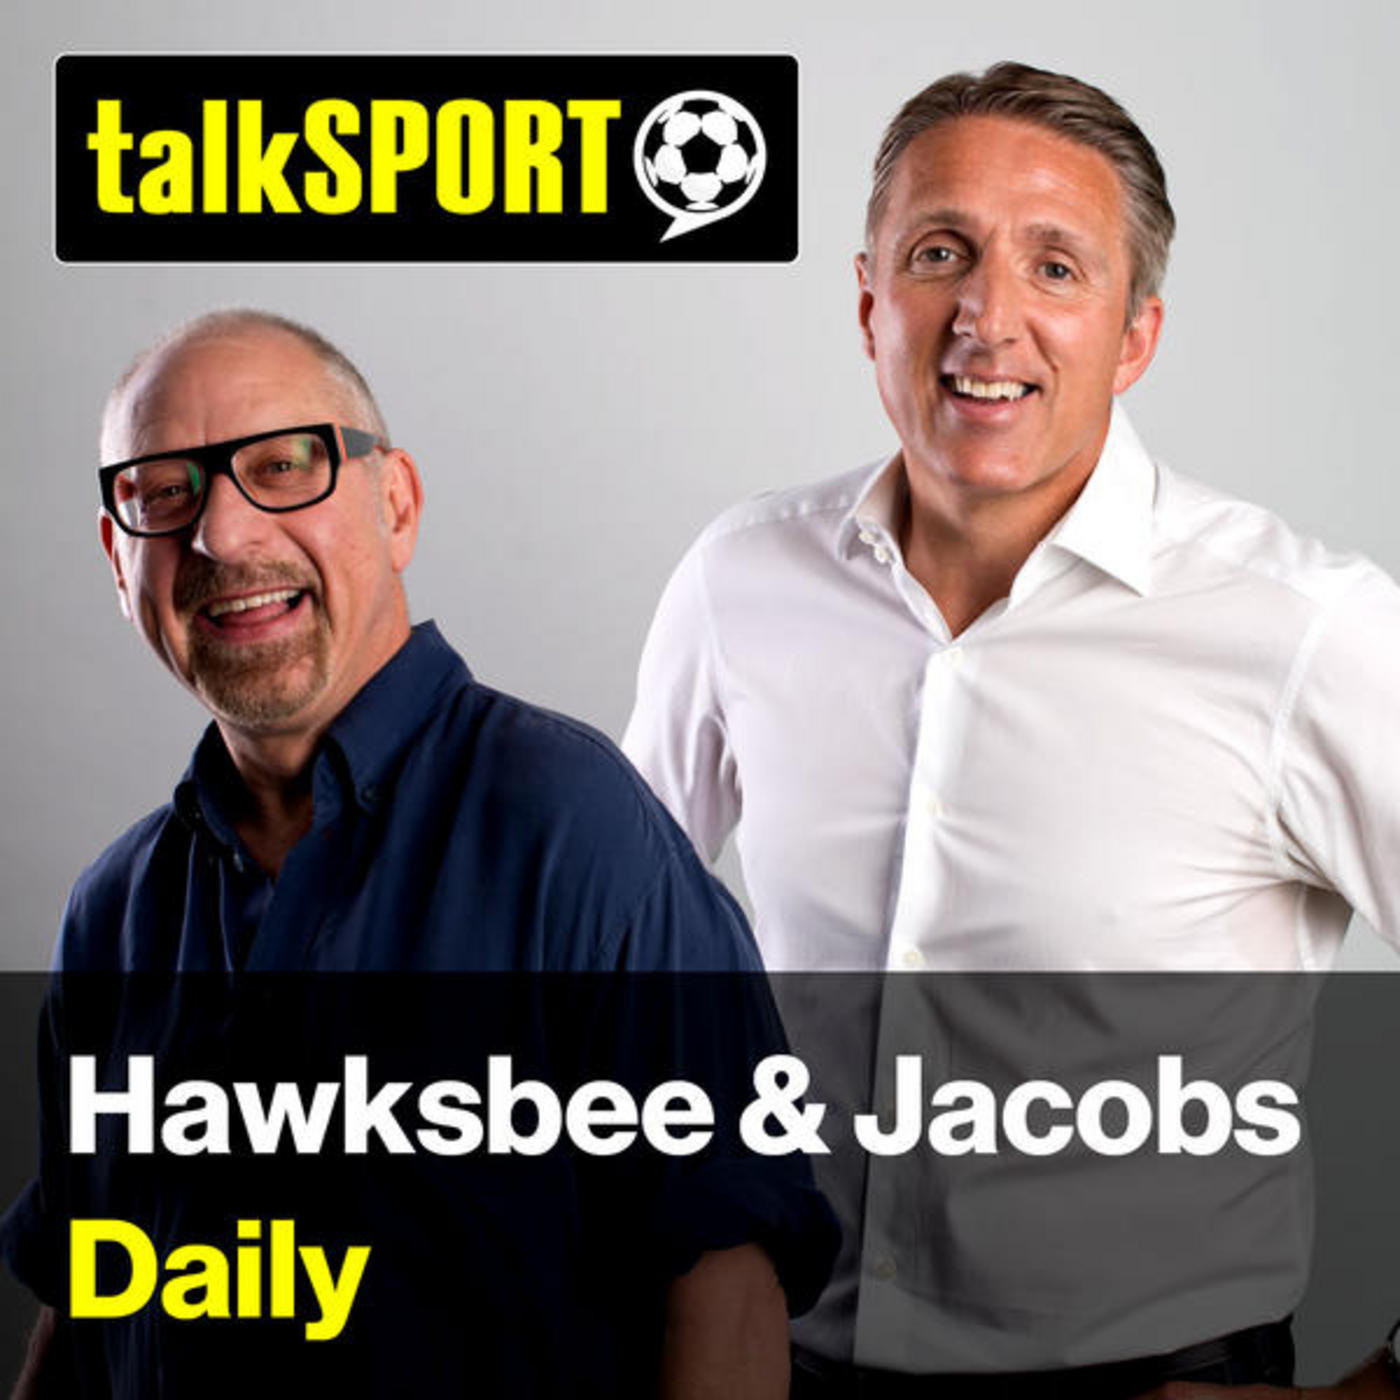 Hawksbee and Jacobs Daily